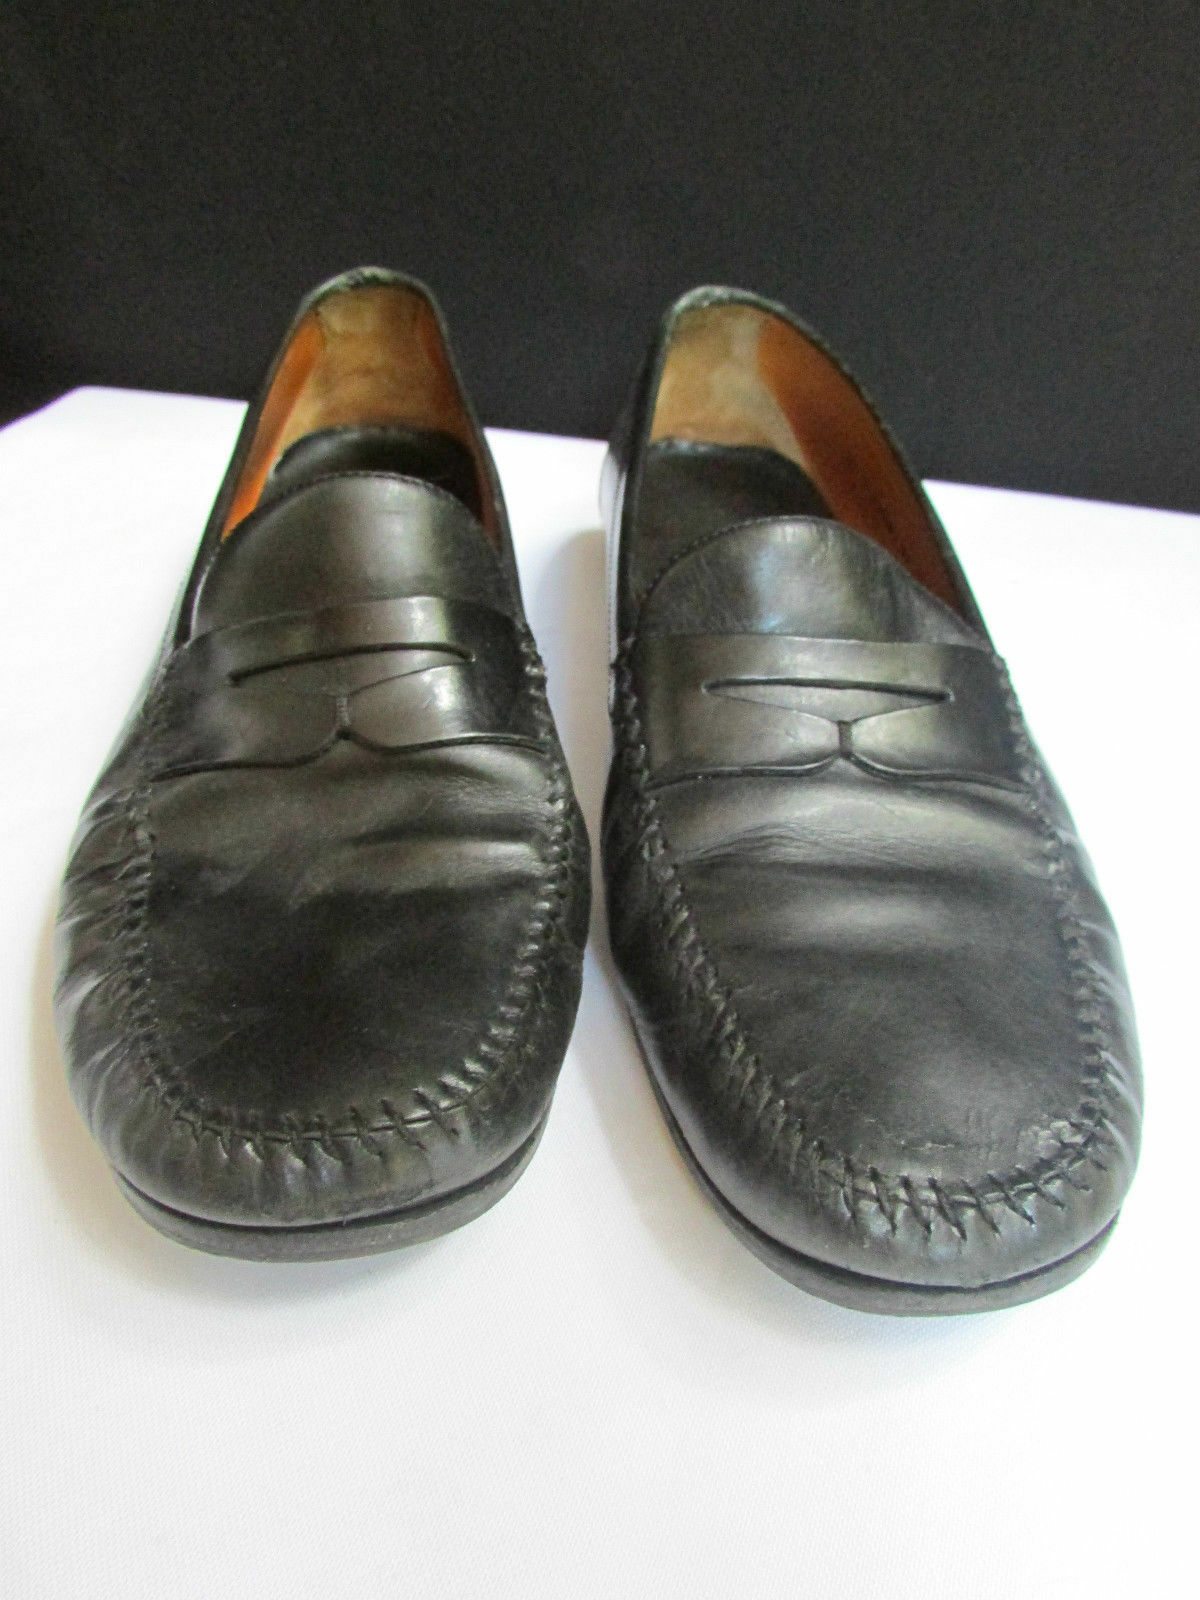 A COLE HAAN MEN BLACK CLASSIC LOAFERS WORK TERENDY SHOES LEATHER 10